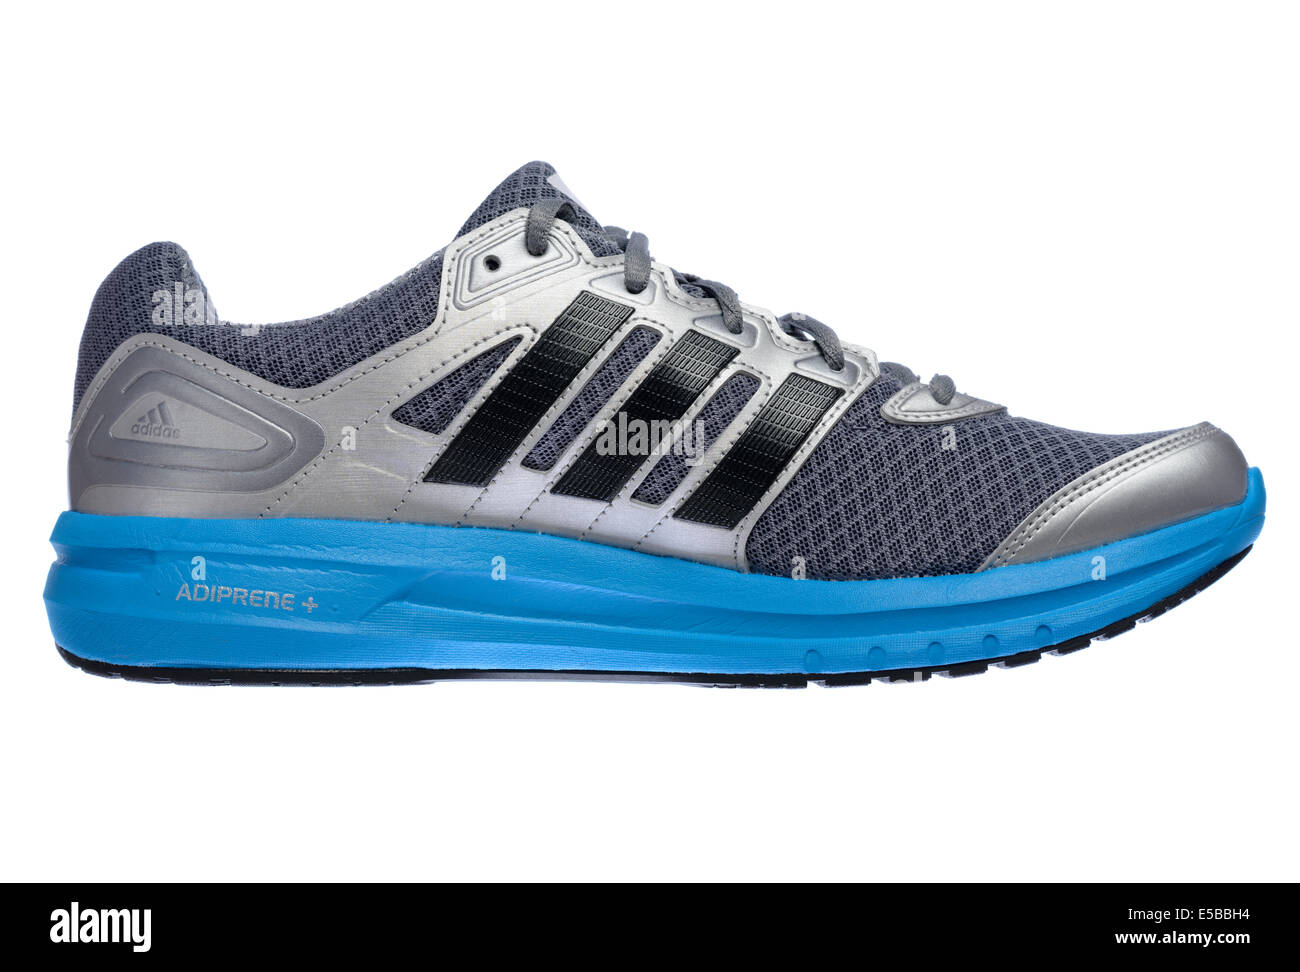 Lateral view of a silver and blue Adidas running shoe cut out isolated on white background - Stock Image